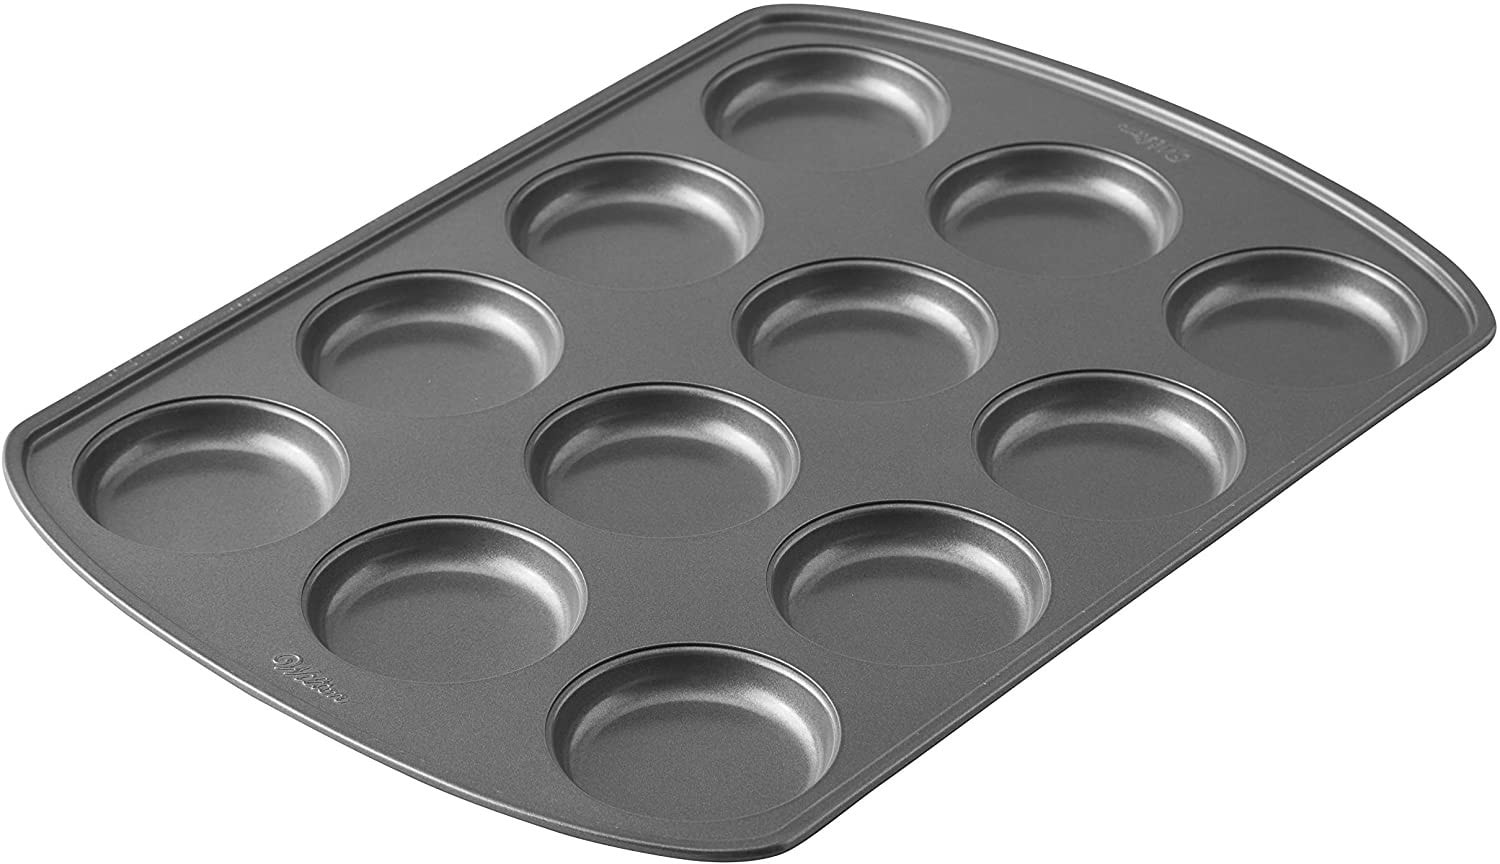 Wilton Perfect Results Non-Stick Muffin Top Baking Pan